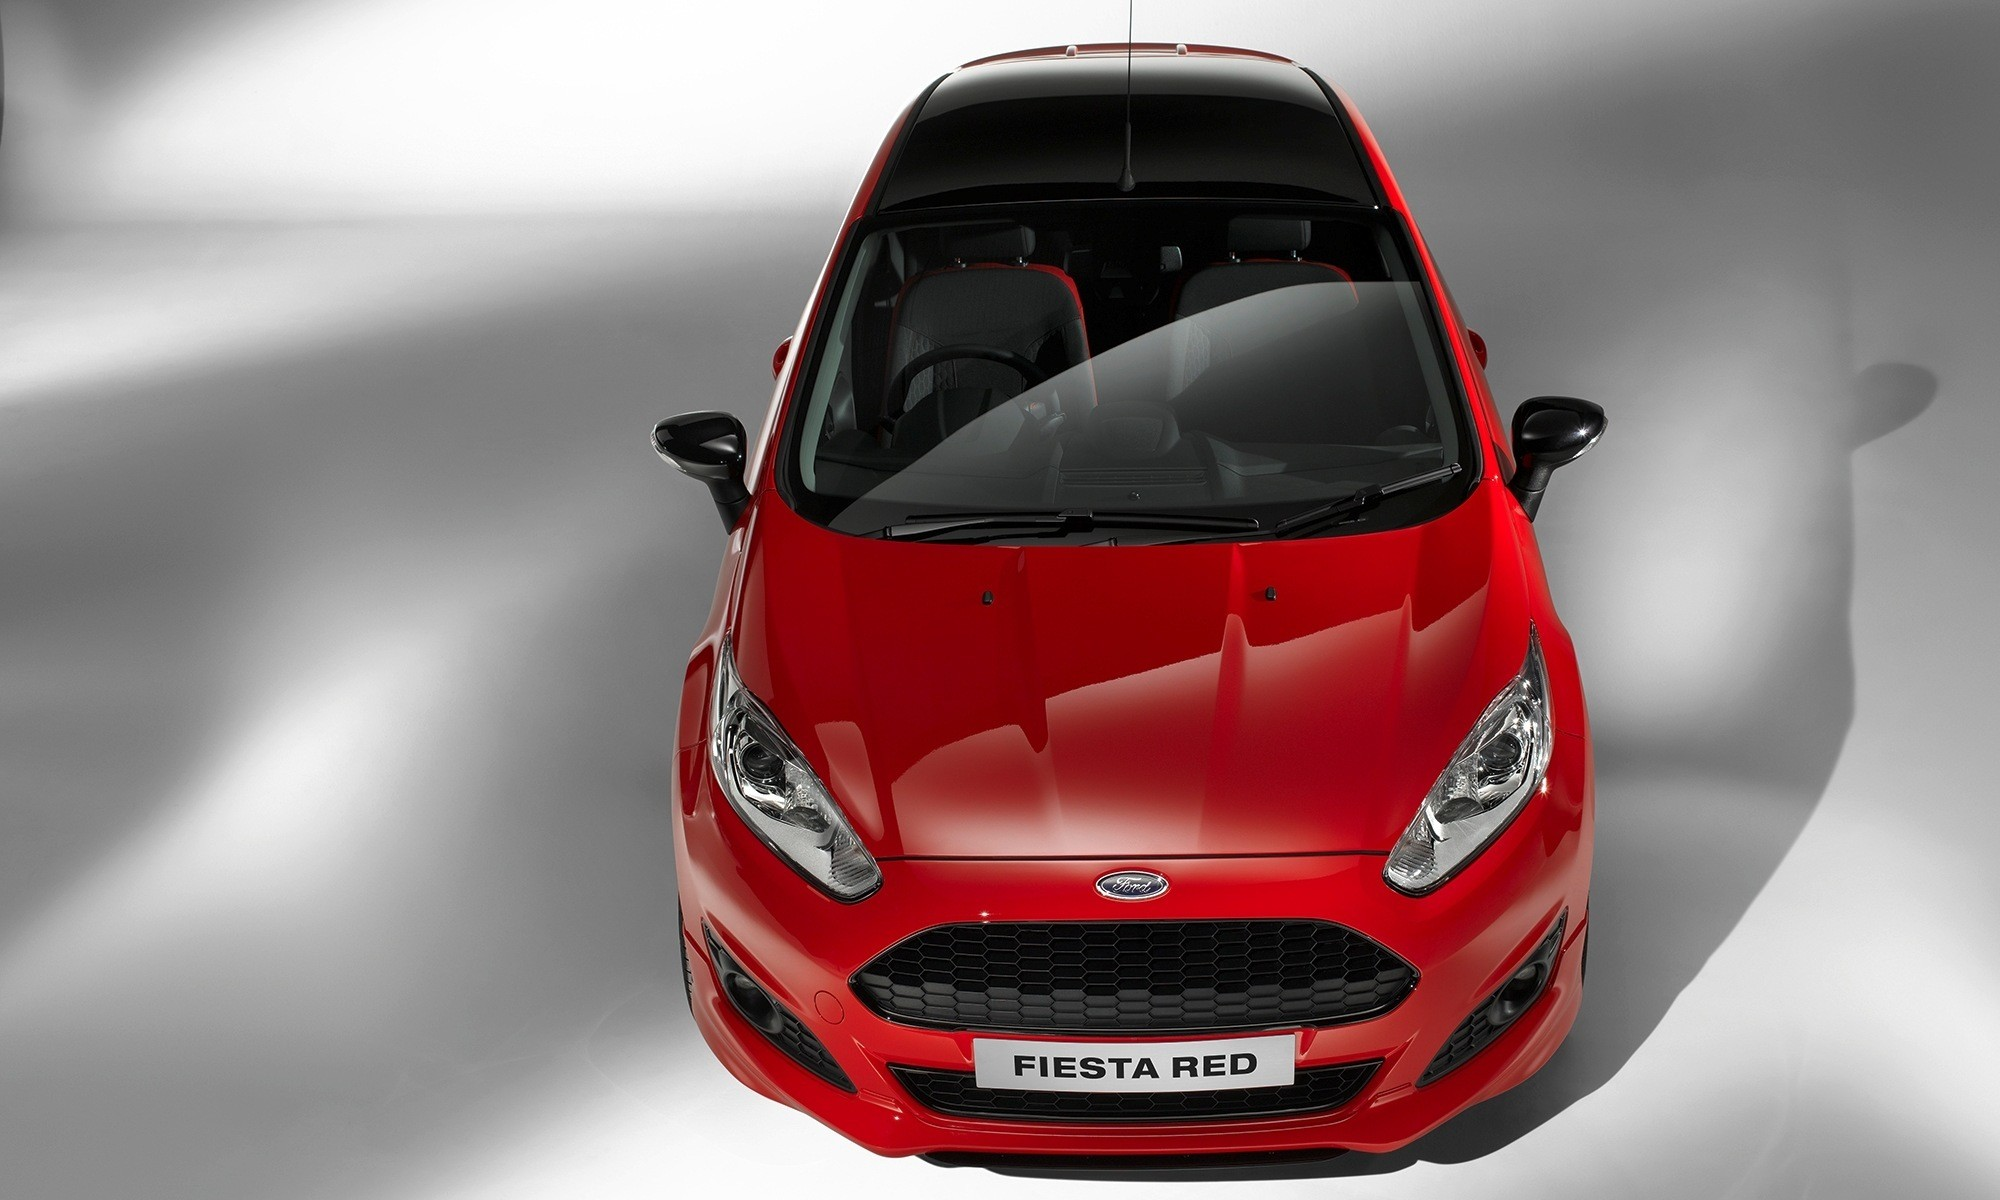 2014 ford fiesta red edition and fiesta black edition for uk with aston style painted lips. Black Bedroom Furniture Sets. Home Design Ideas